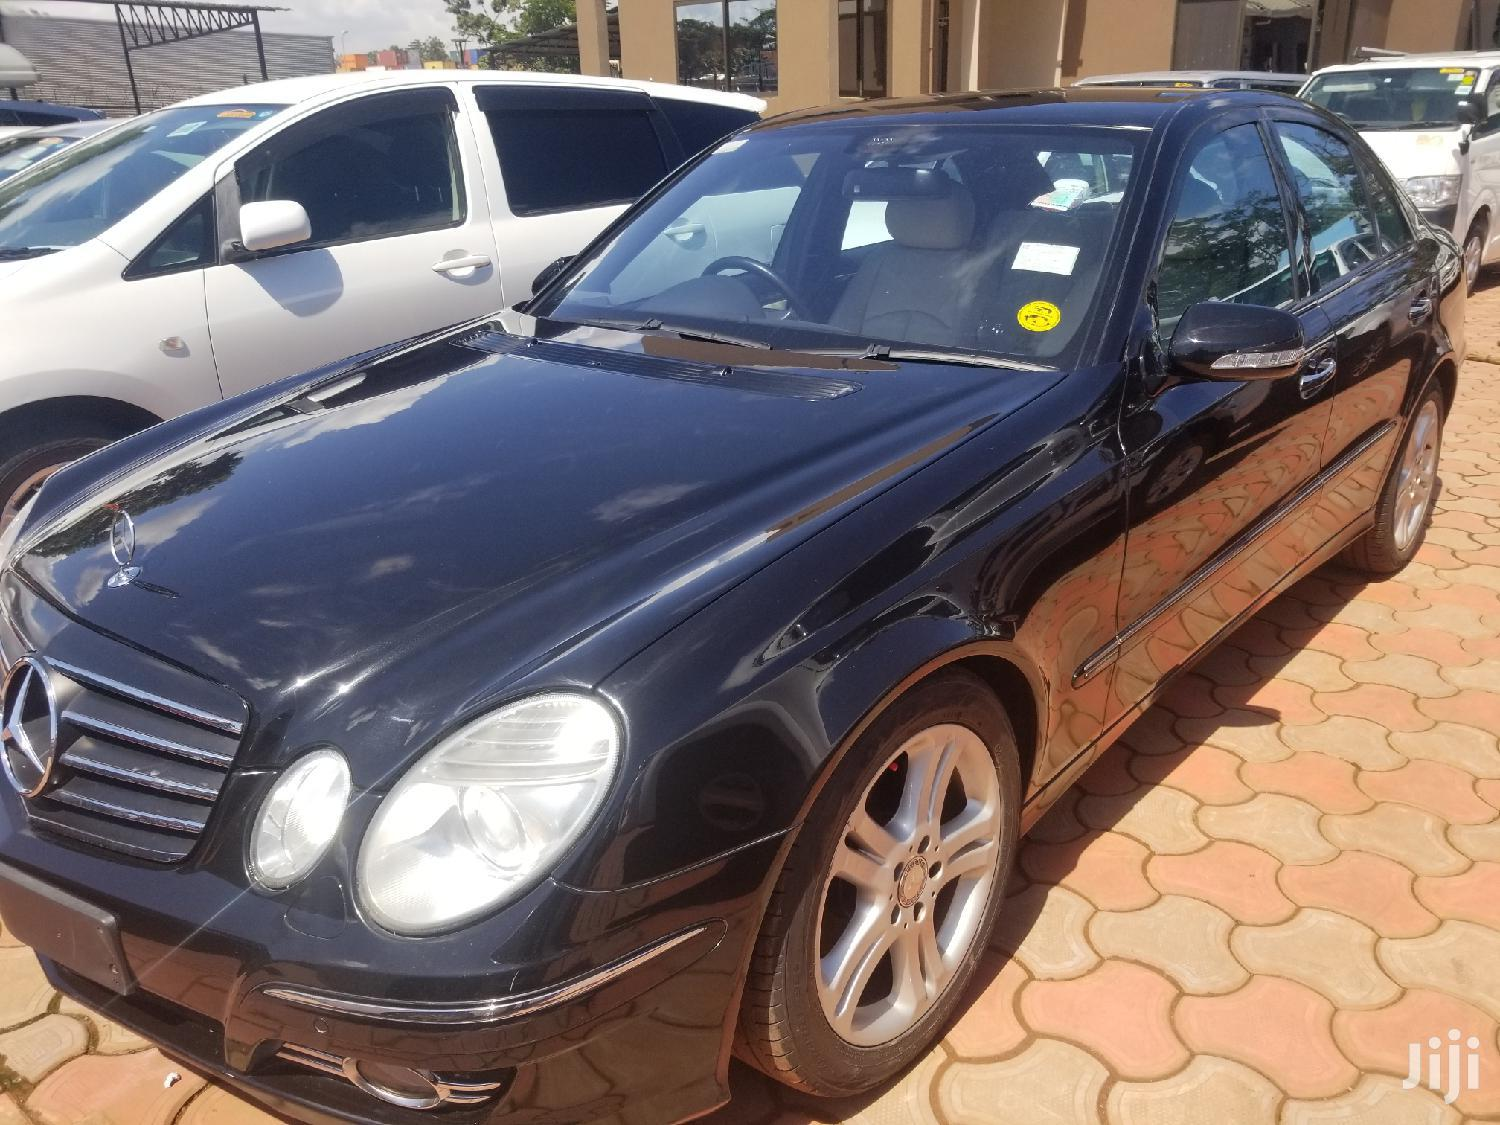 Mercedes-Benz E200 2010 Black | Cars for sale in Kampala, Central Region, Uganda